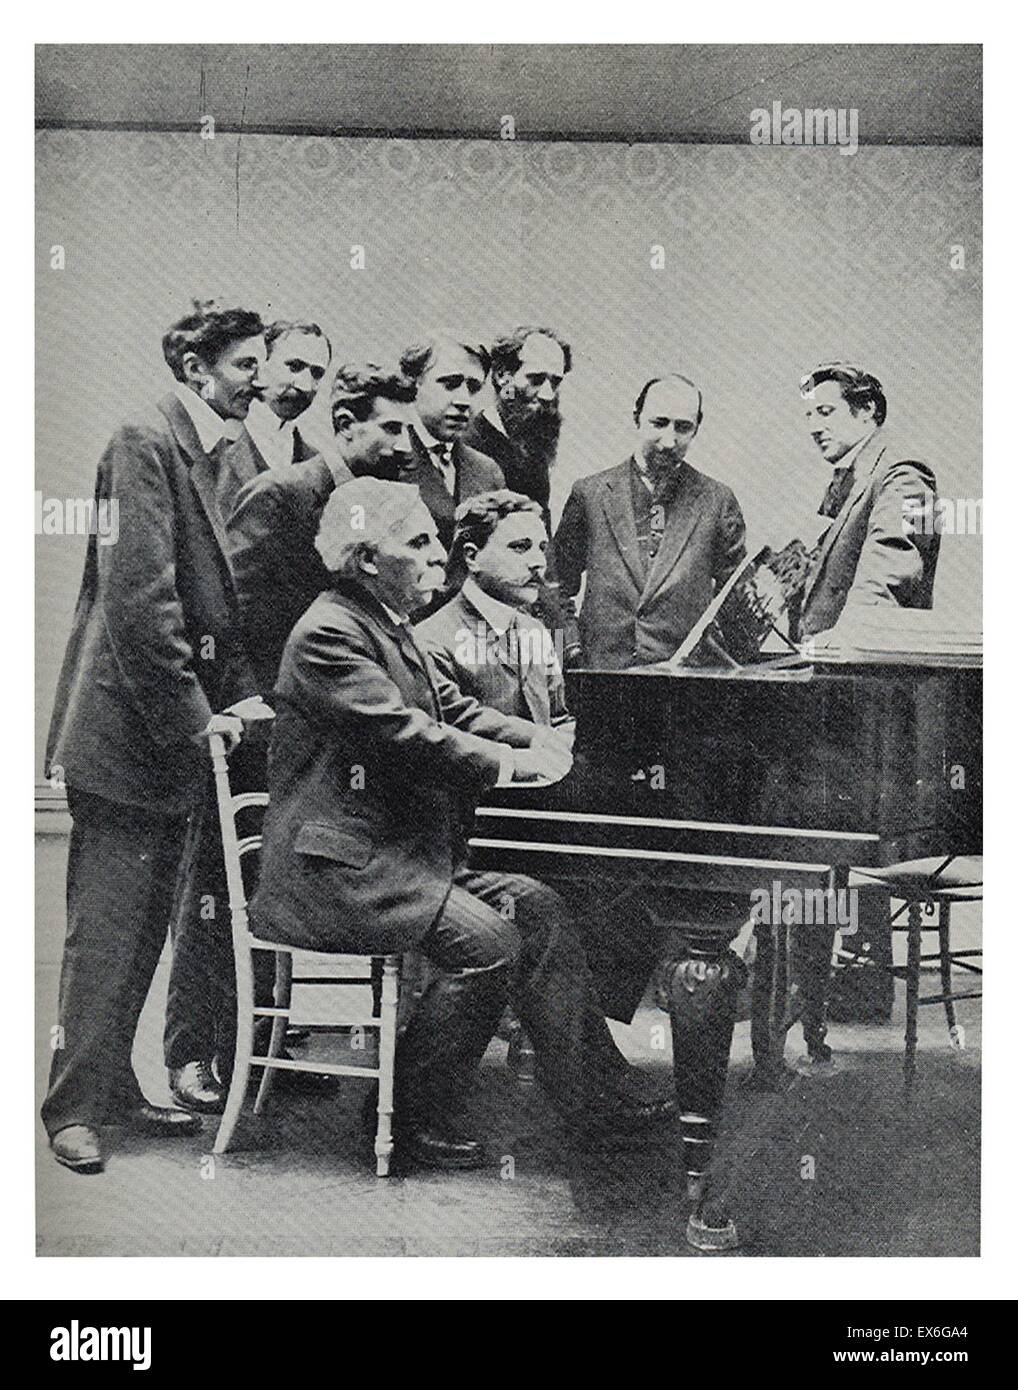 Founding committee of the Société musicale indépendente 1909. Gabriel Faure (1845-1924) and Jean - Stock Image